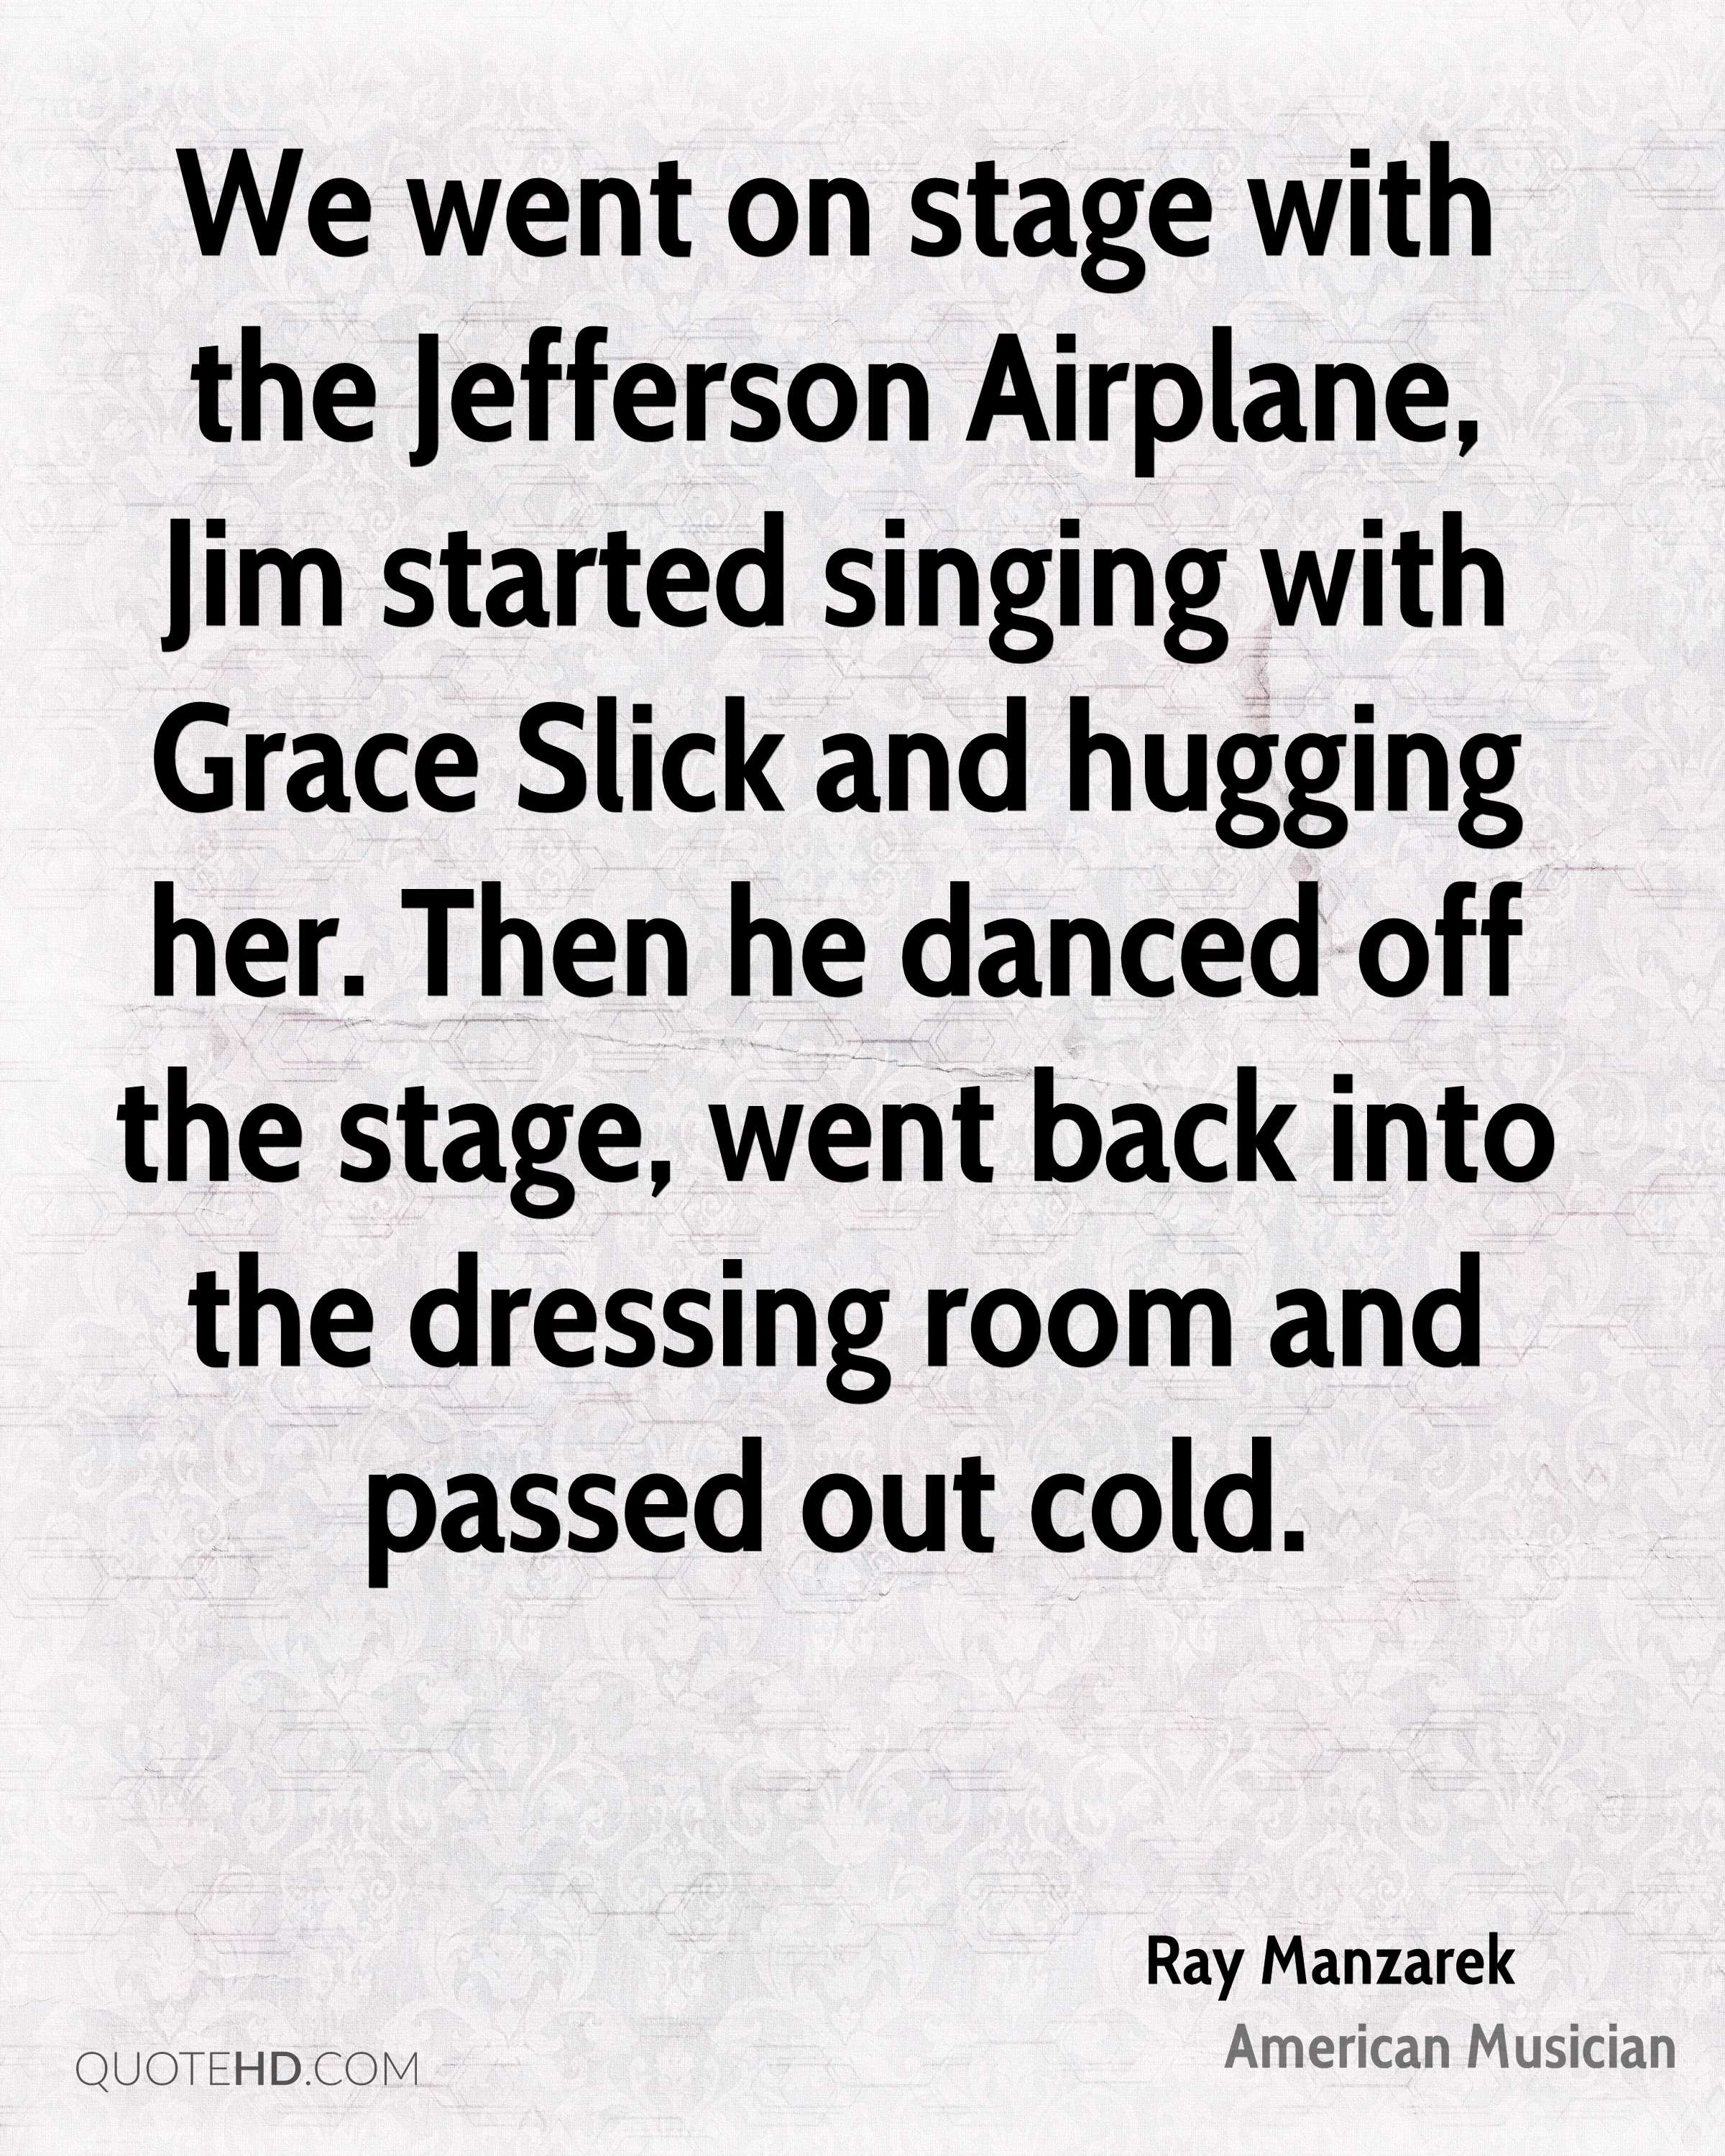 We went on stage with the Jefferson Airplane, Jim started singing with Grace Slick and hugging her. Then he danced off the stage, went back into the dressing room and passed out cold.